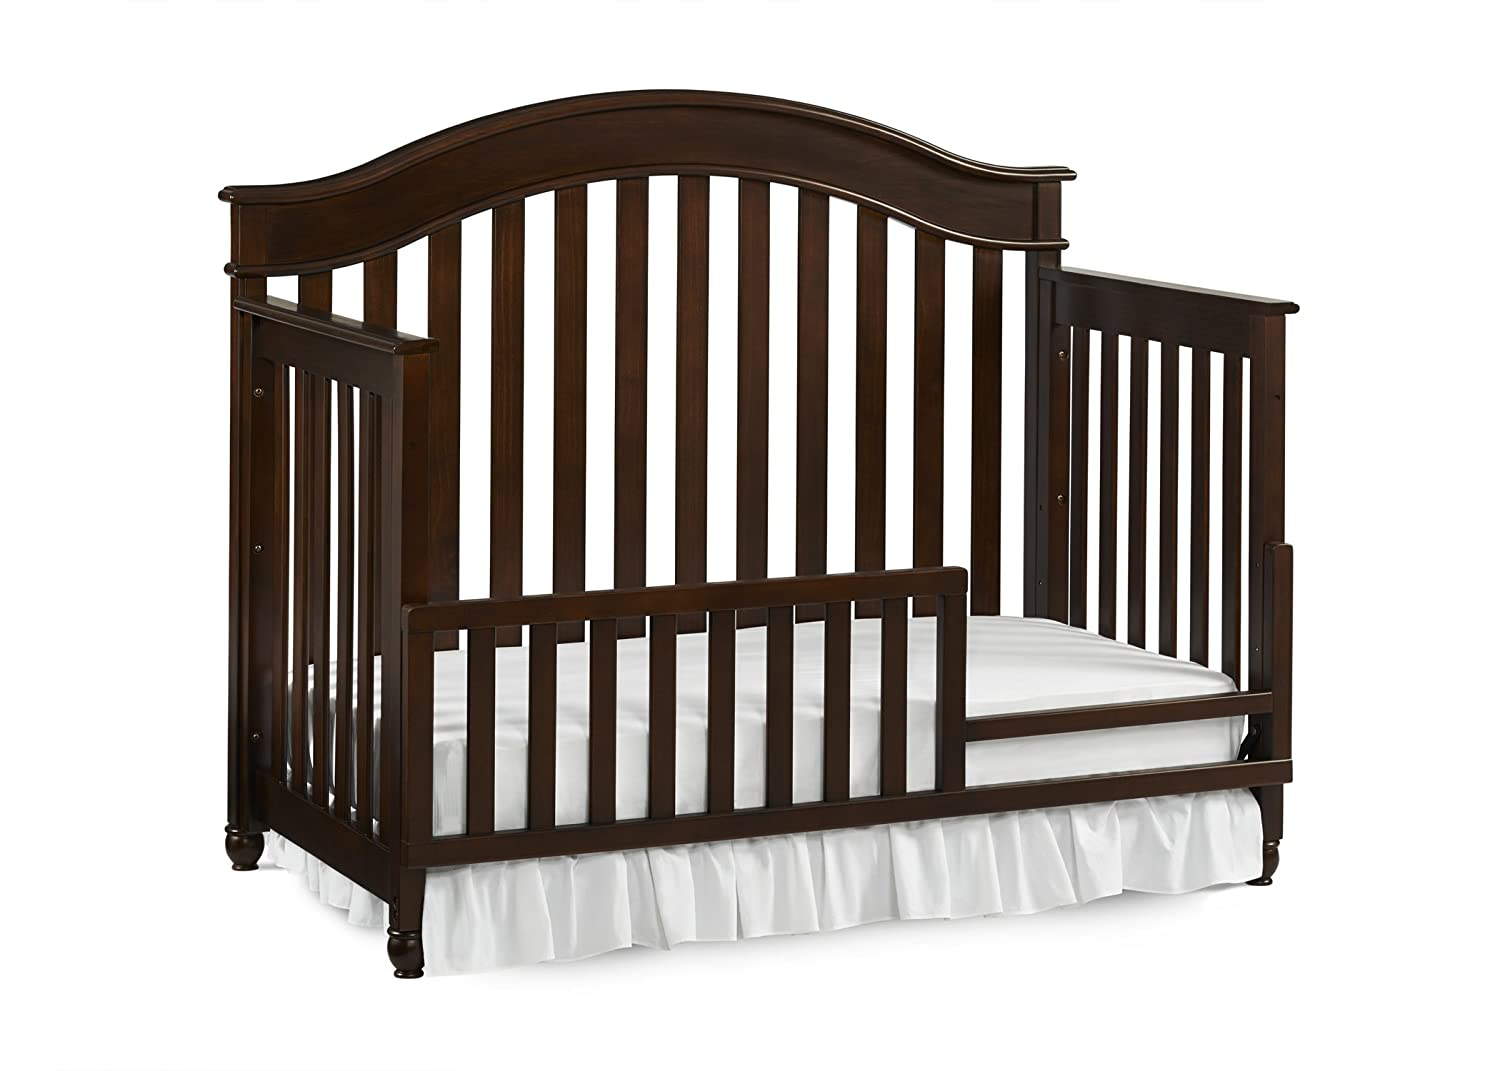 espresso guard crib afg baby alicegraceset rail alice in w set raw magnifier guardrail